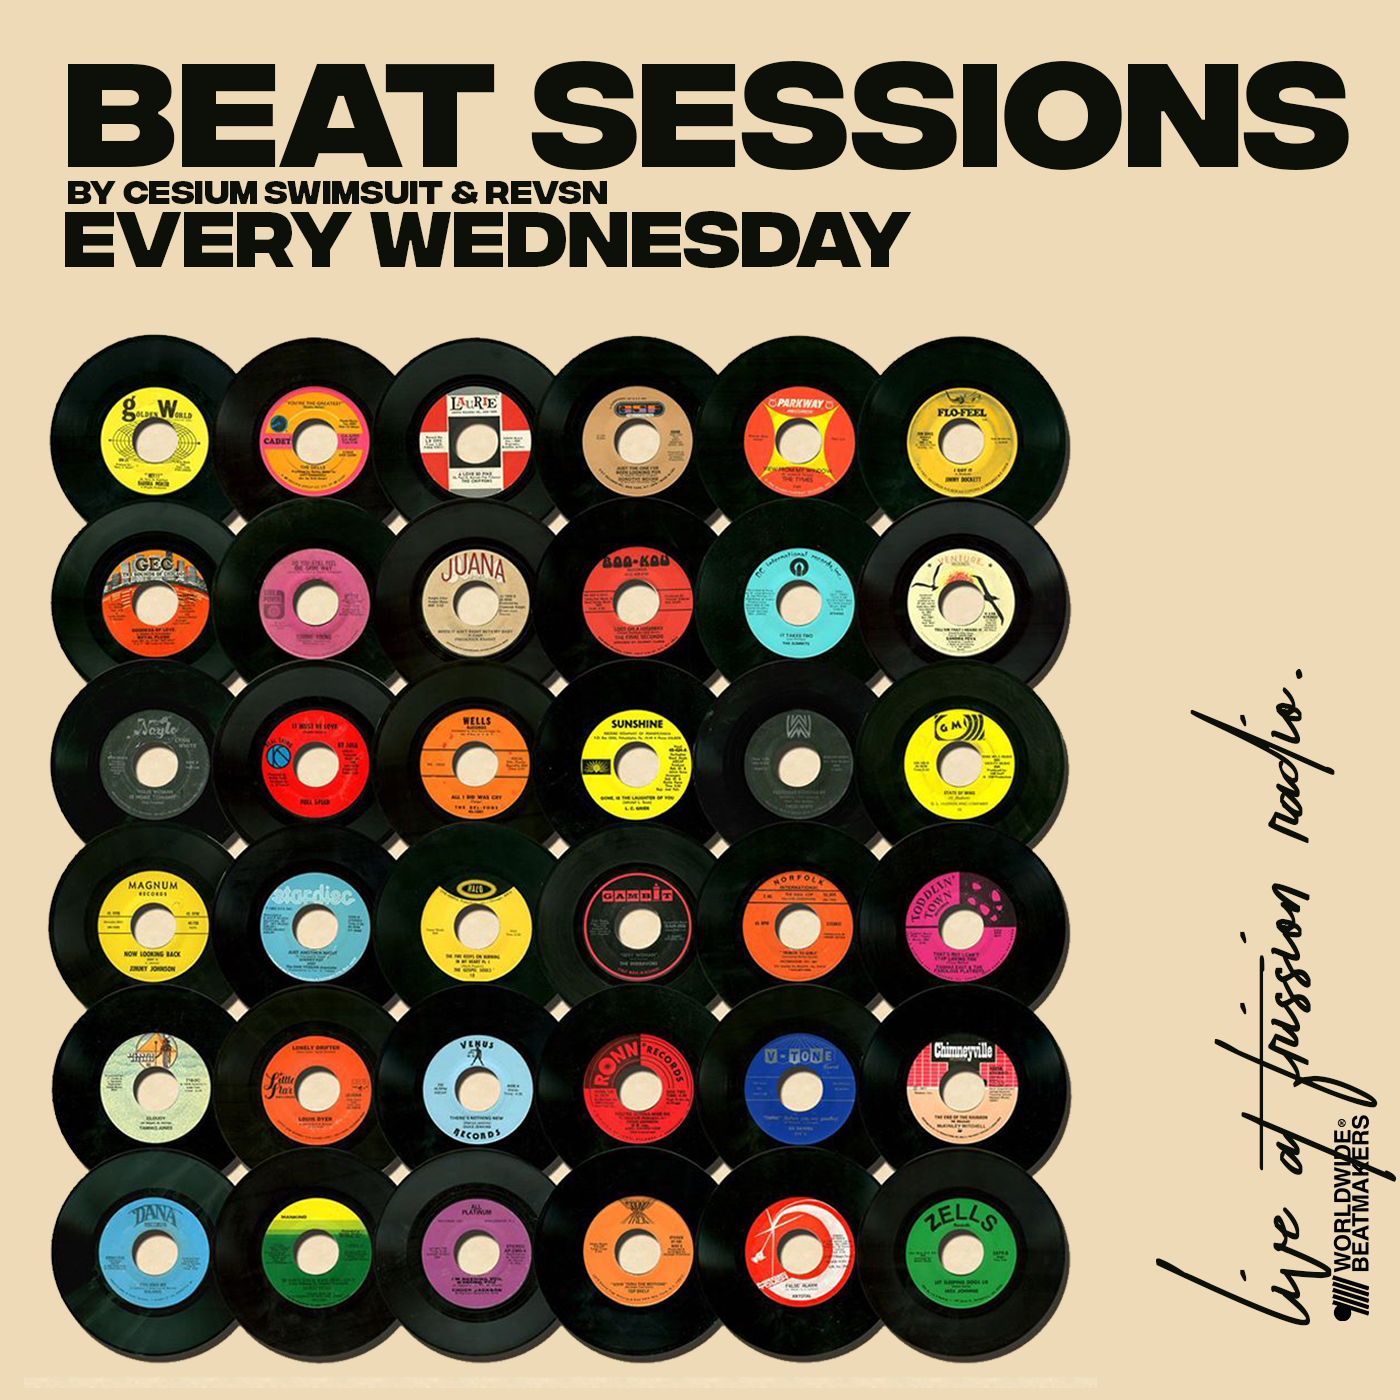 Beat Sessions - Episode 08 Season 04 with Cesium Swimsuit